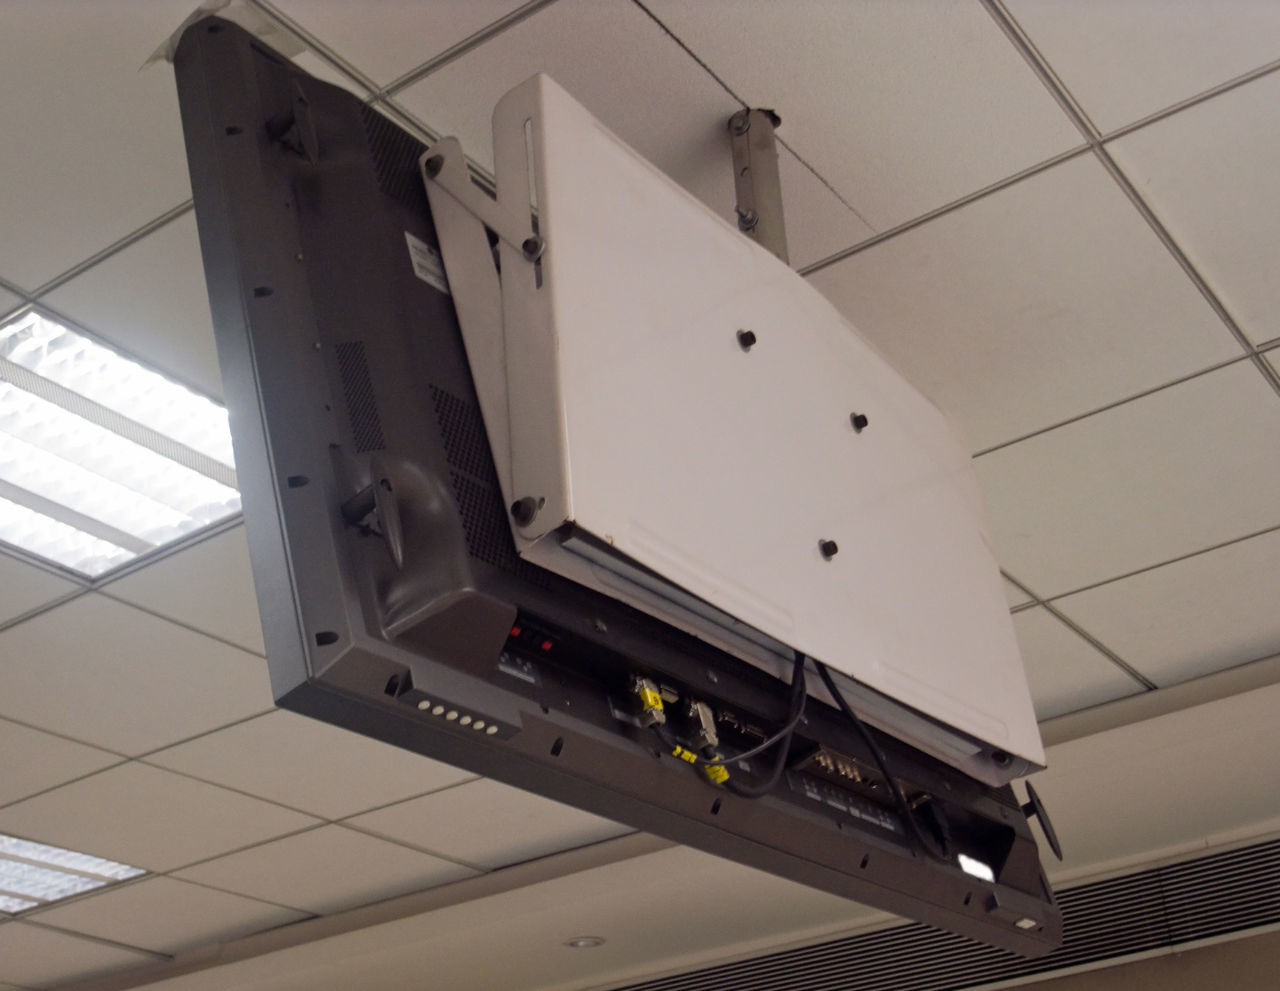 In large auditoriums / presentation rooms, there are LCD televisions hanging from the roof so that people sitting near the rear of the room can also see the presentation Electronics  Hanging TV Indoors  Overhead Television Projection Screen Television Television Set Tv